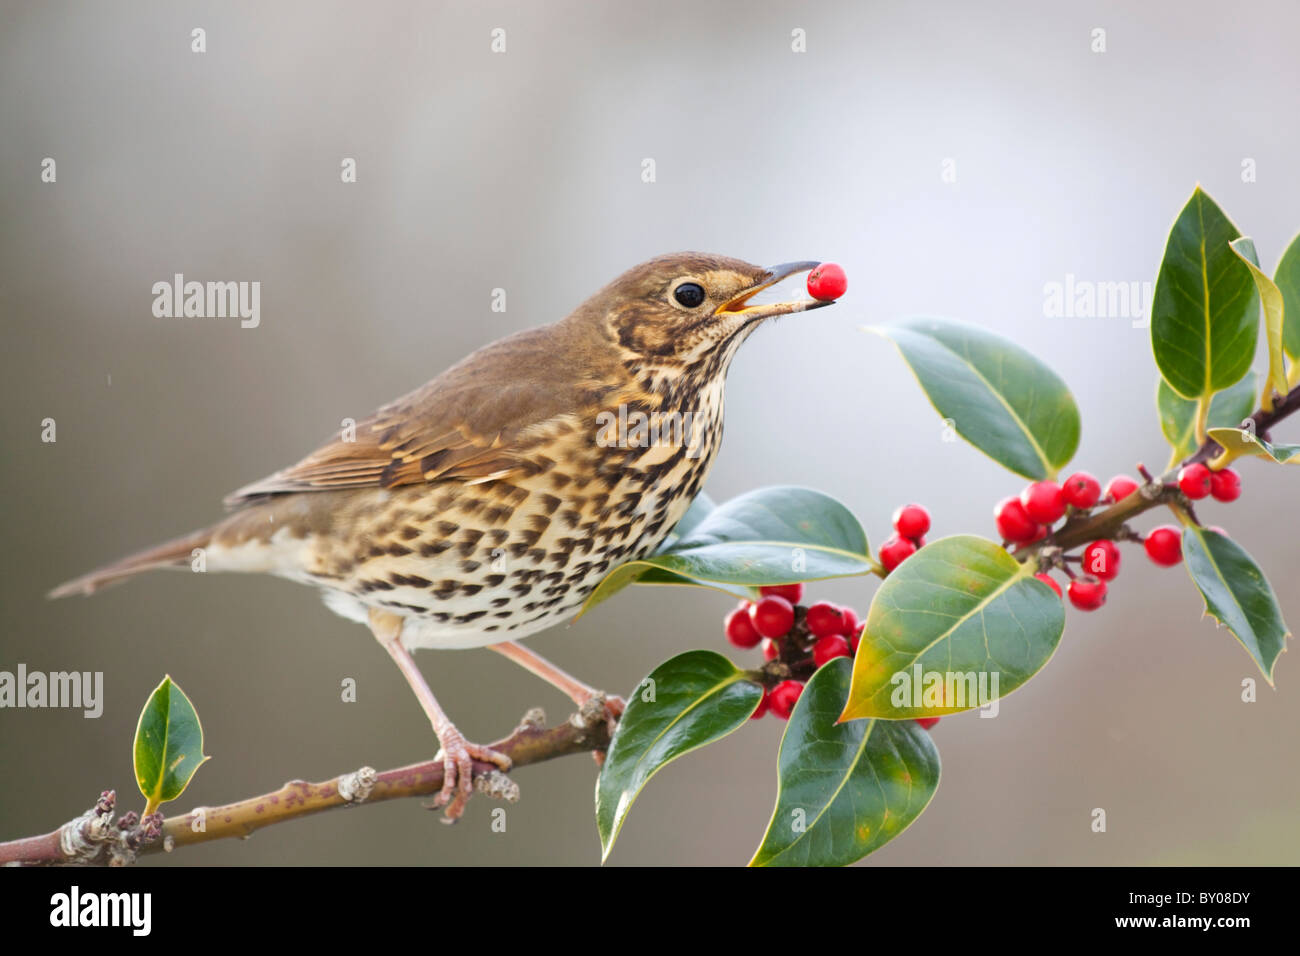 Song Thrush; Turdus philomelos; eating holly berries - Stock Image